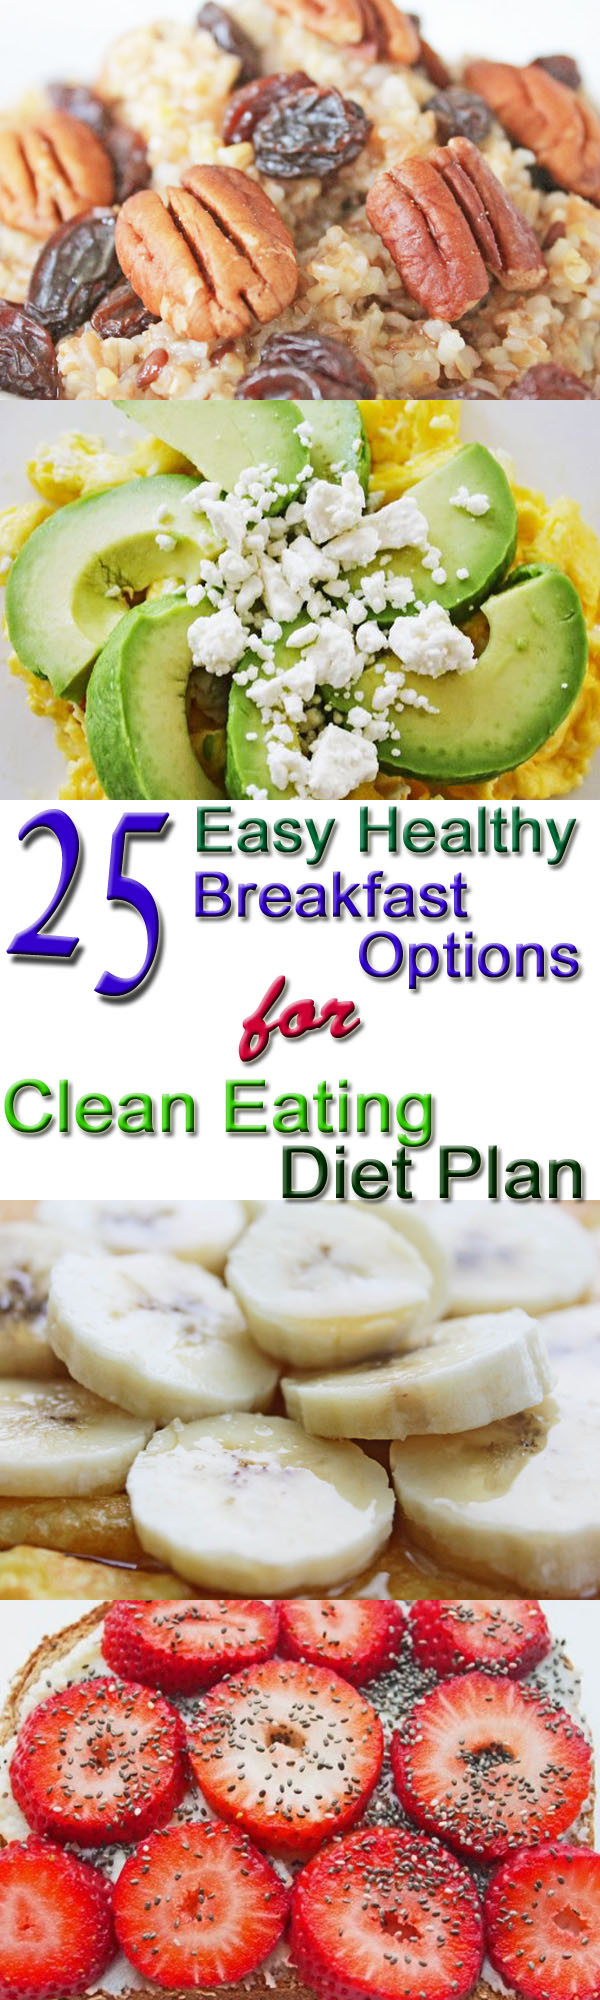 Easy Healthy Breakfast Ideas  25 Healthy Breakfast Options